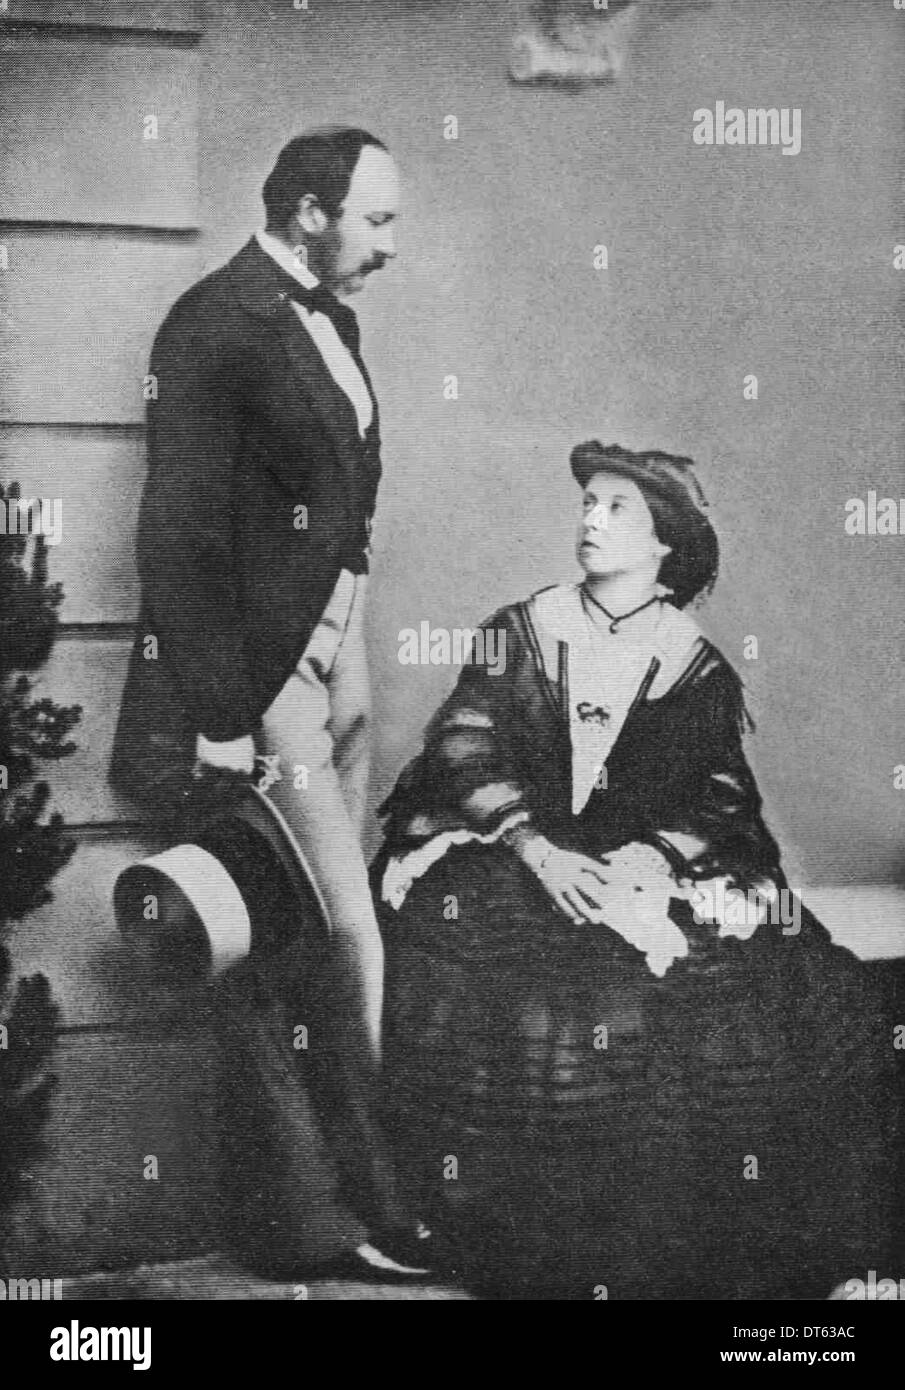 Prince Albert husband consort and Queen Victoria in 1860. From the archives of Press Portrait Service (formerly Press Portrait Service). - Stock Image